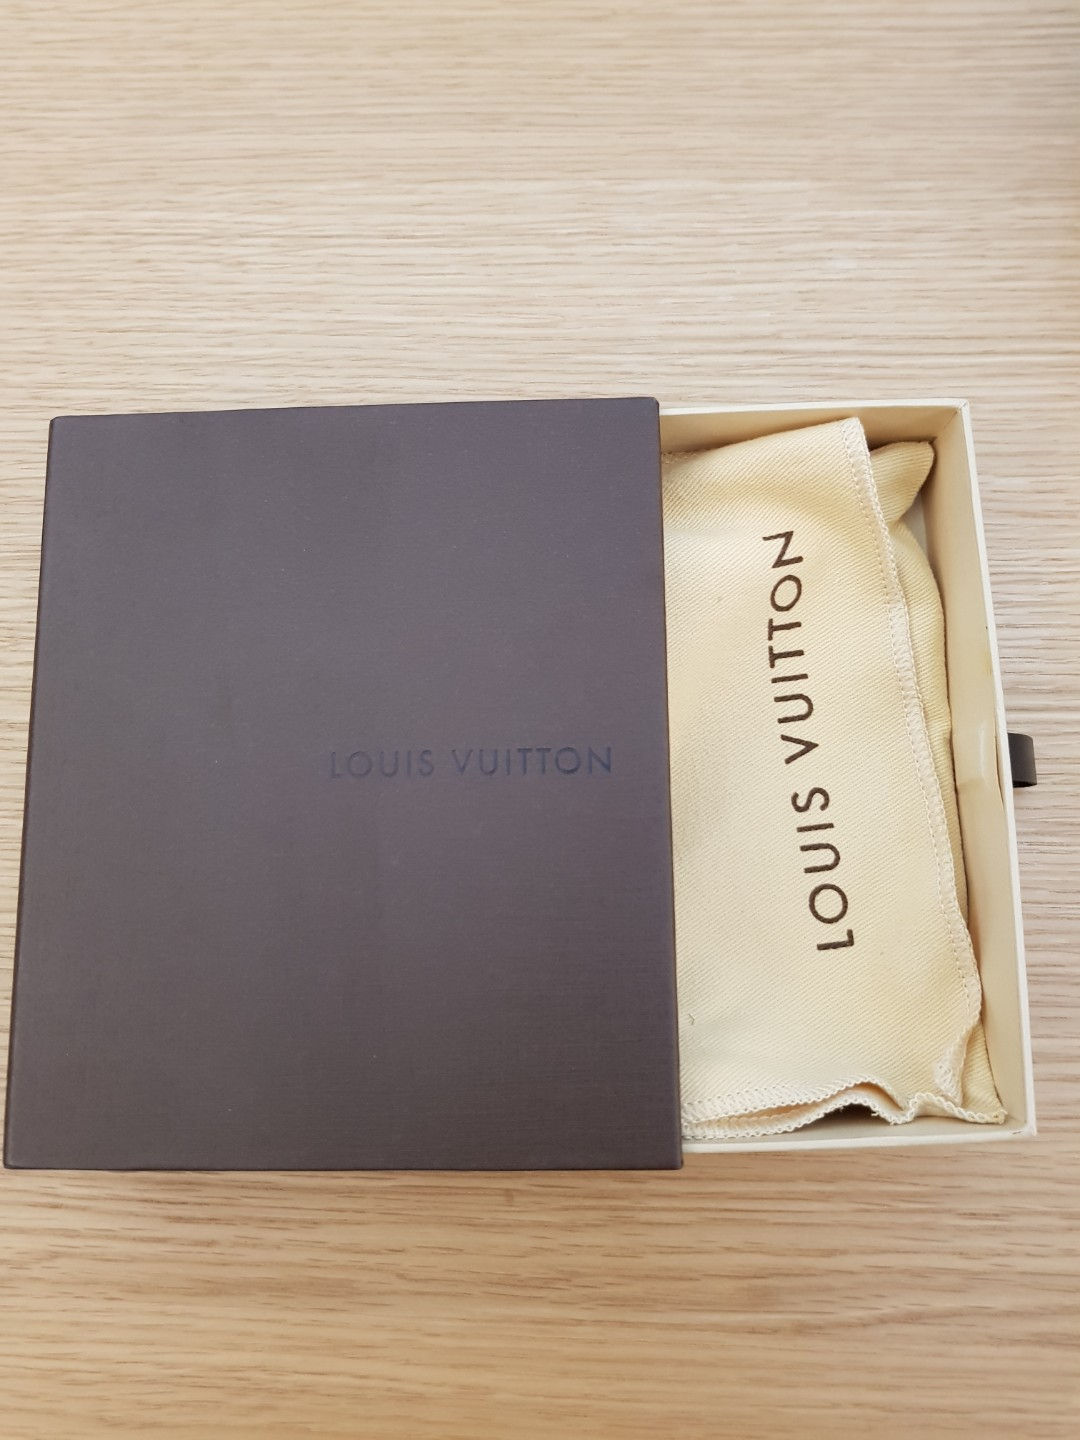 0b5bd4cfddcd Original Louis Vuitton gift display box with dust bag for wallet ...